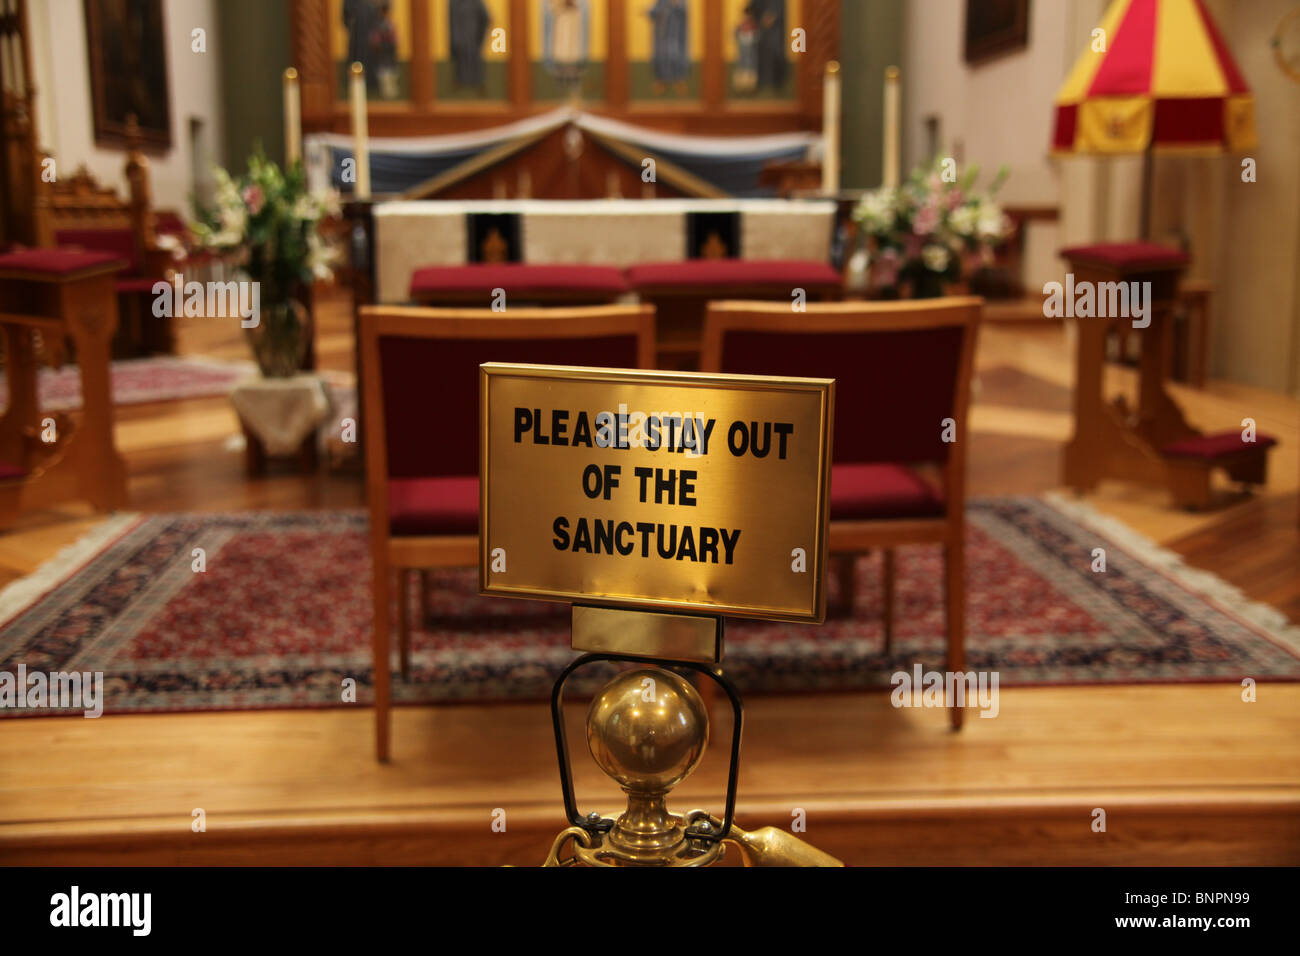 Stay out of the sanctuary sign at The Cathedral Basilica of St. Francis of Assisi, Santa Fe, New Mexico, June 11, - Stock Image